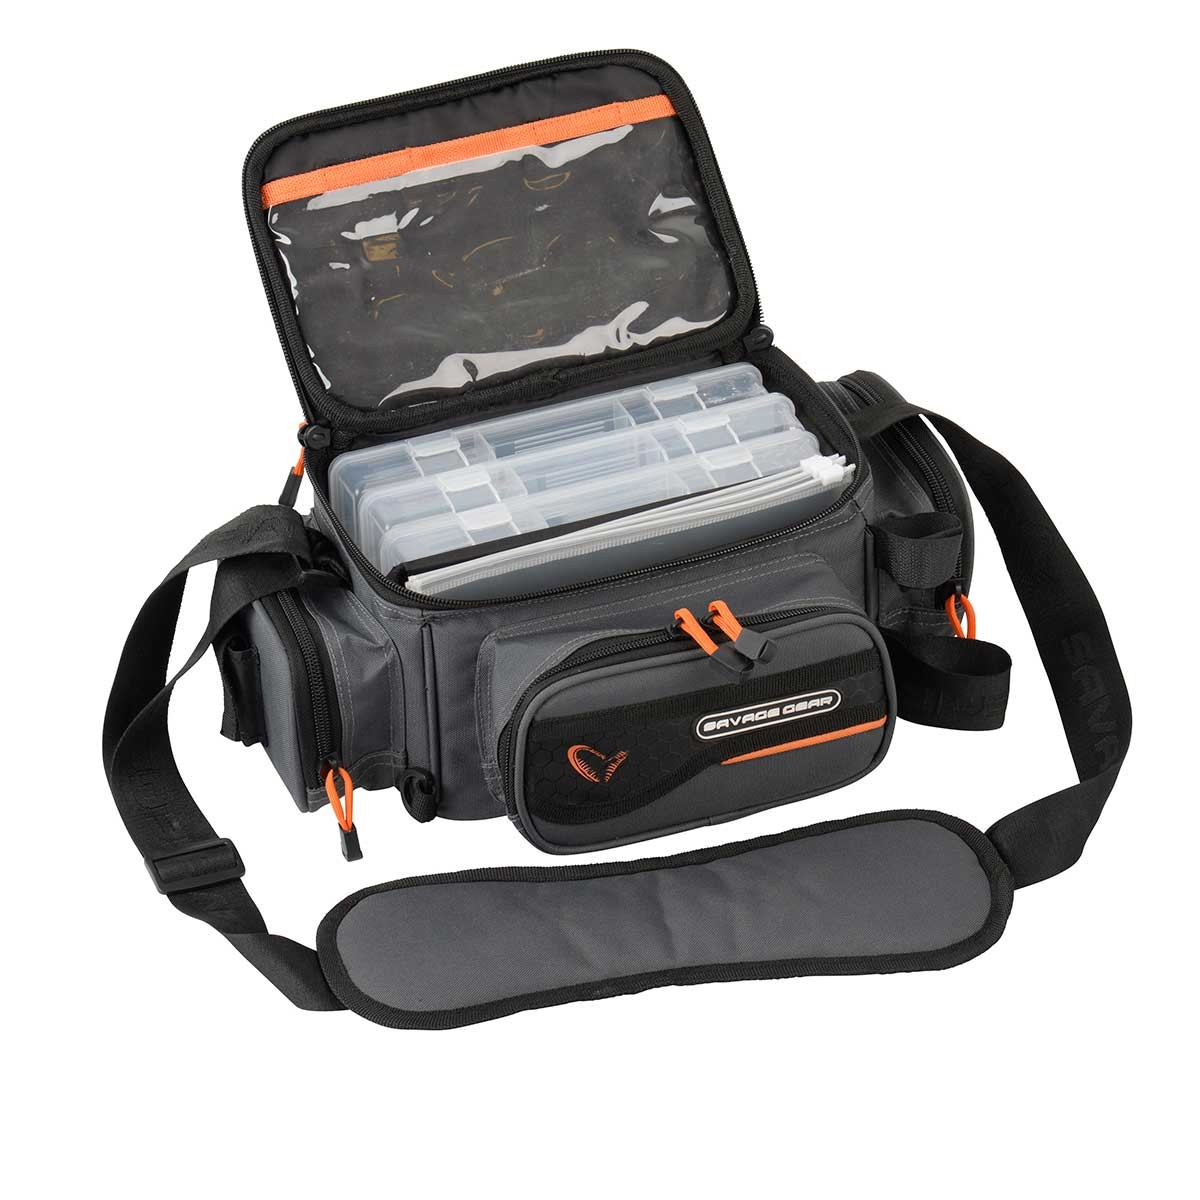 Torba za vijačenje Savage Gear System Box Bag S 54775